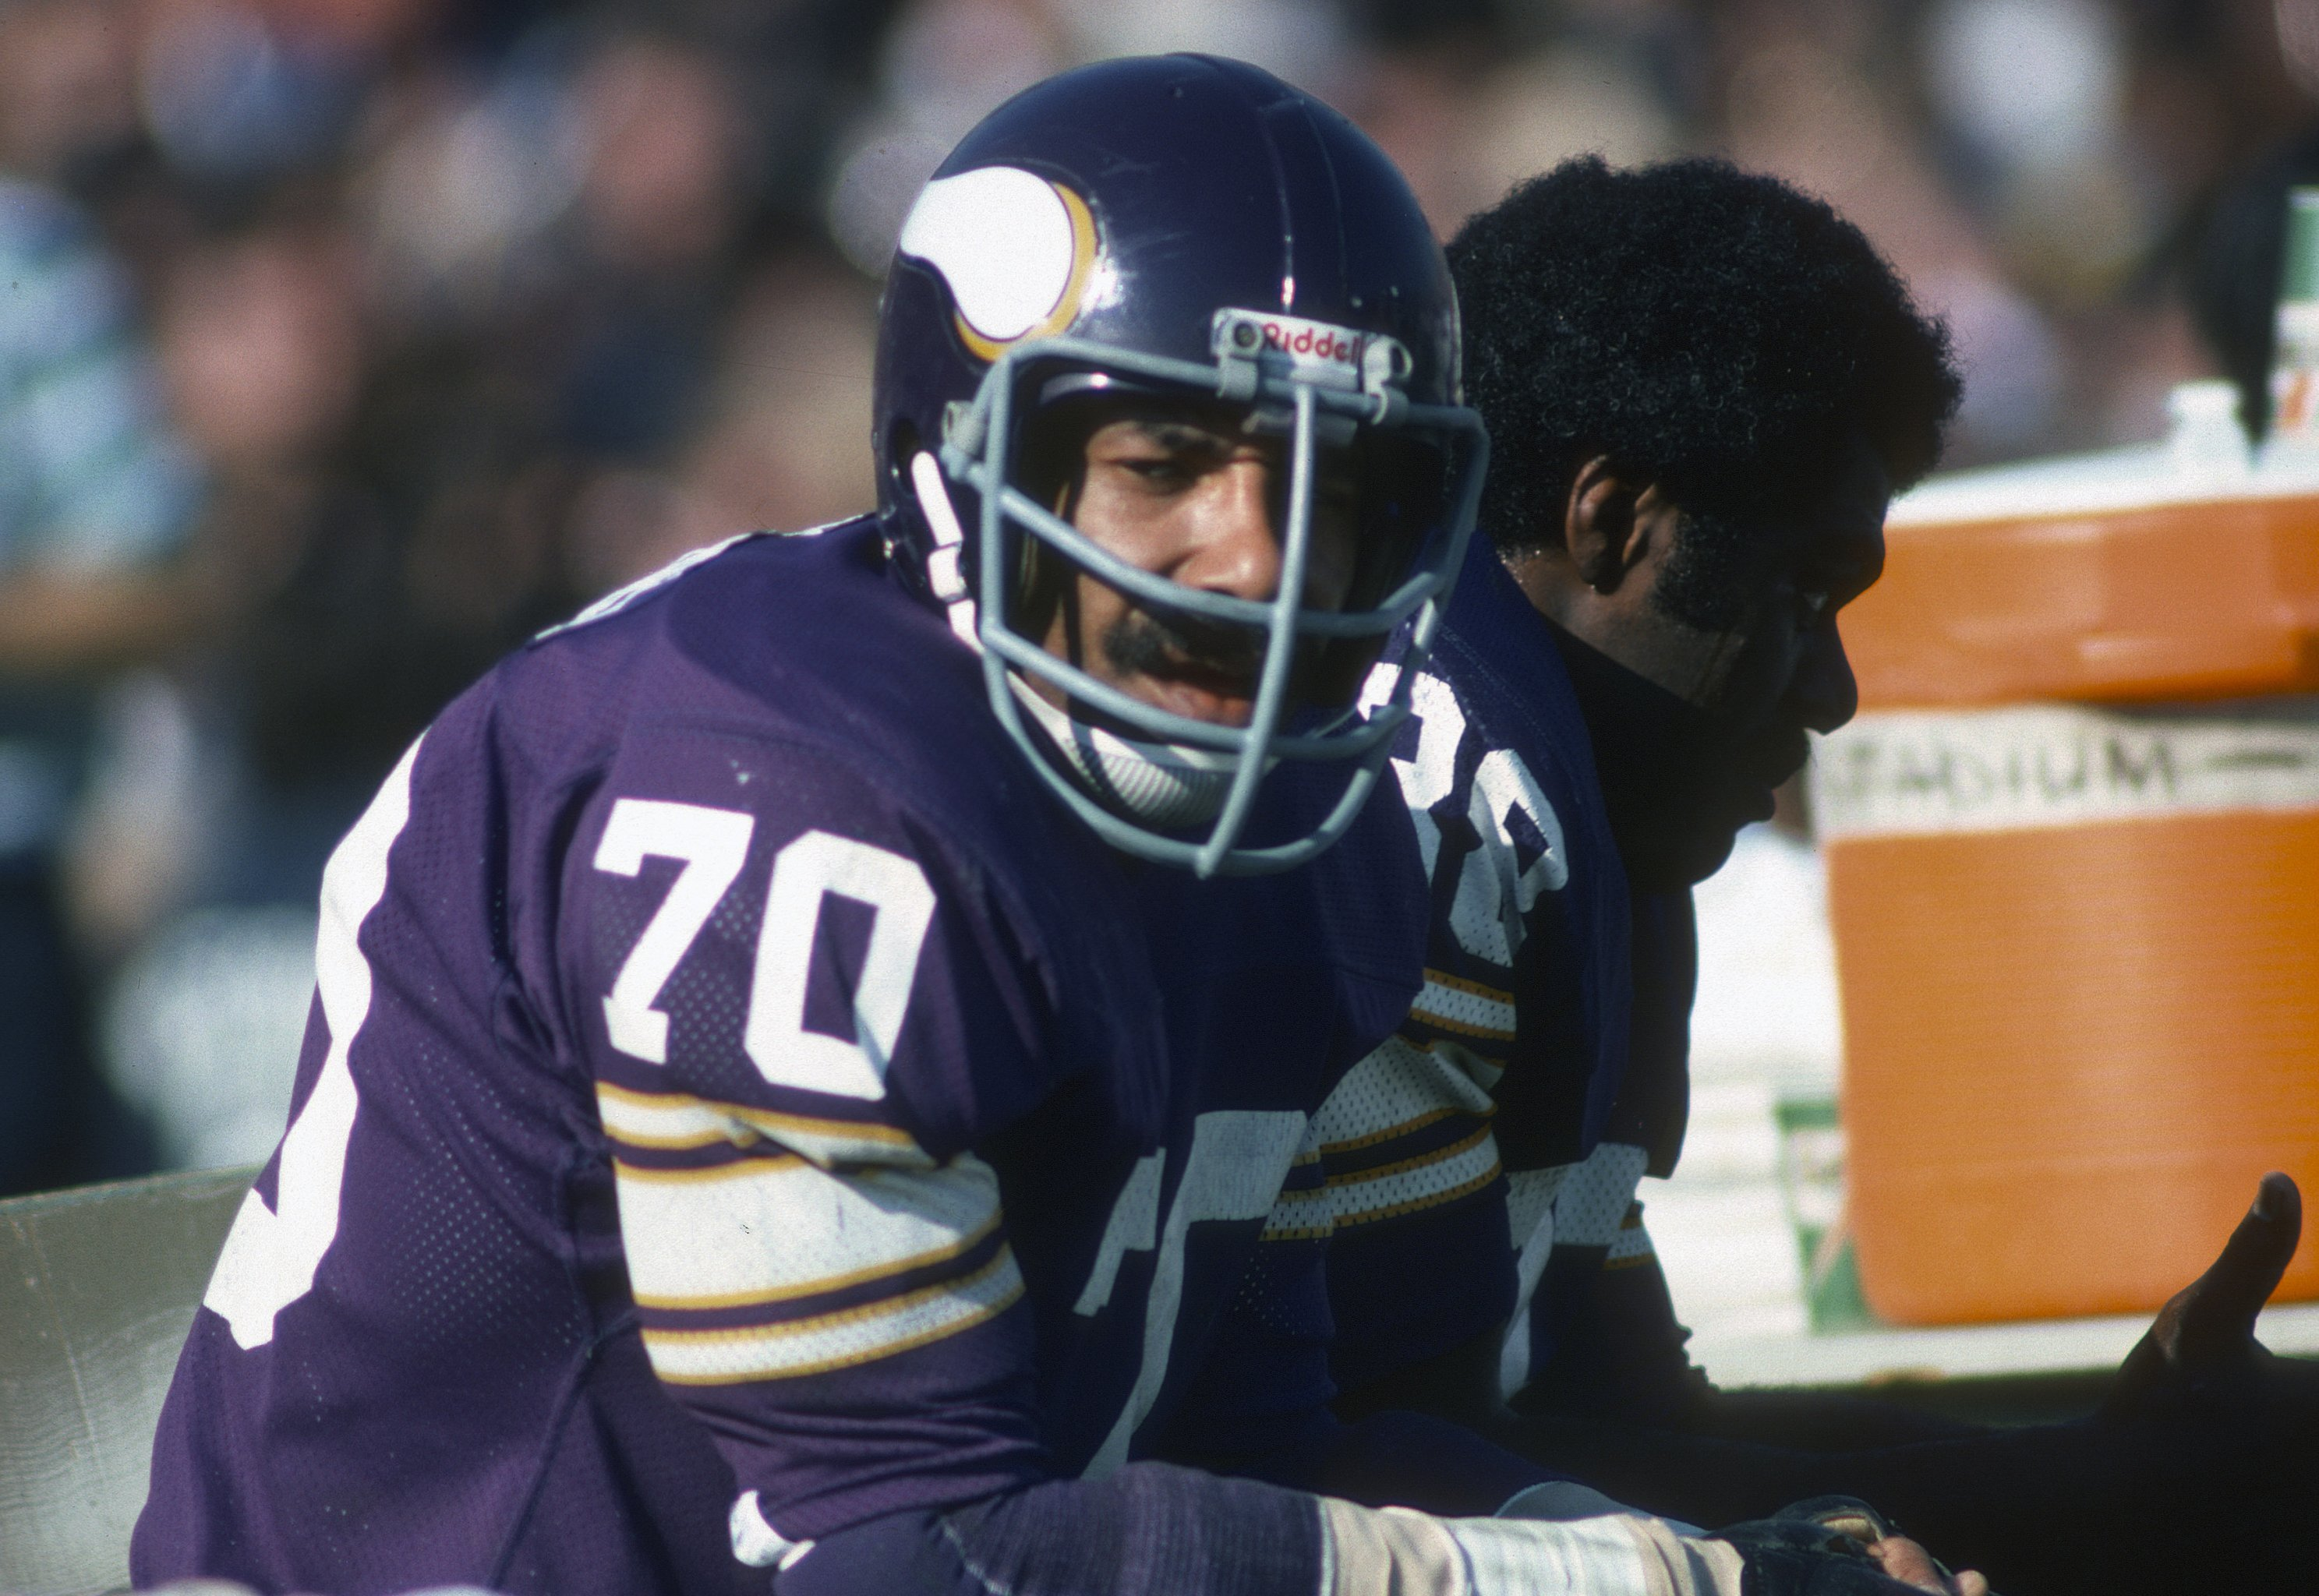 promo code 26f6d d4461 NFL Nostalgia: Ranking the Most Underrated Players in NFL ...